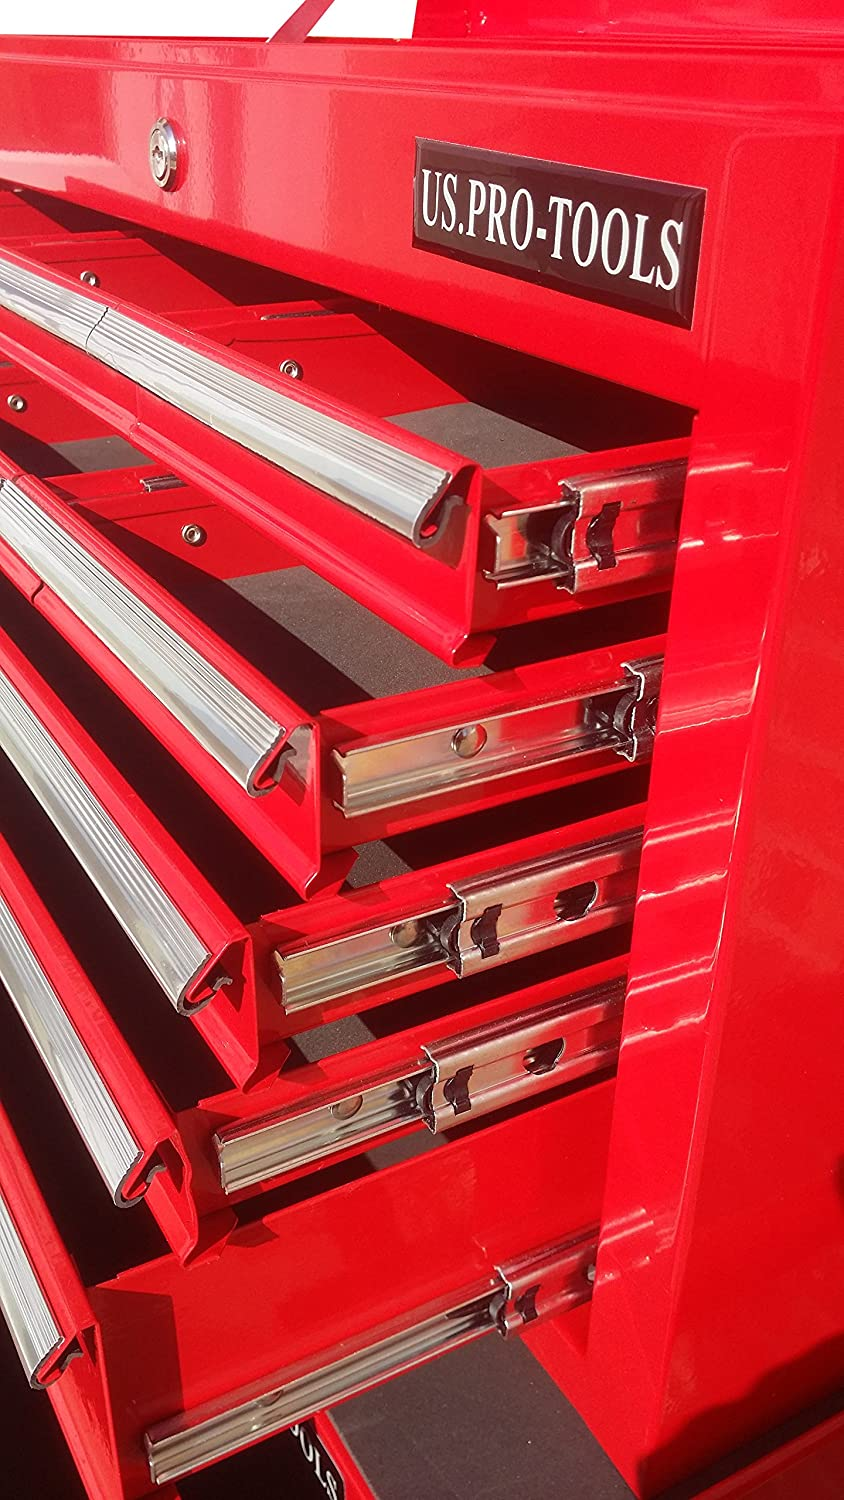 US PRO TOOLS AFFORDABLE TOOL CHEST BOX TOOL CABINET 9 DRAWER BALL BEARING DRAWERS